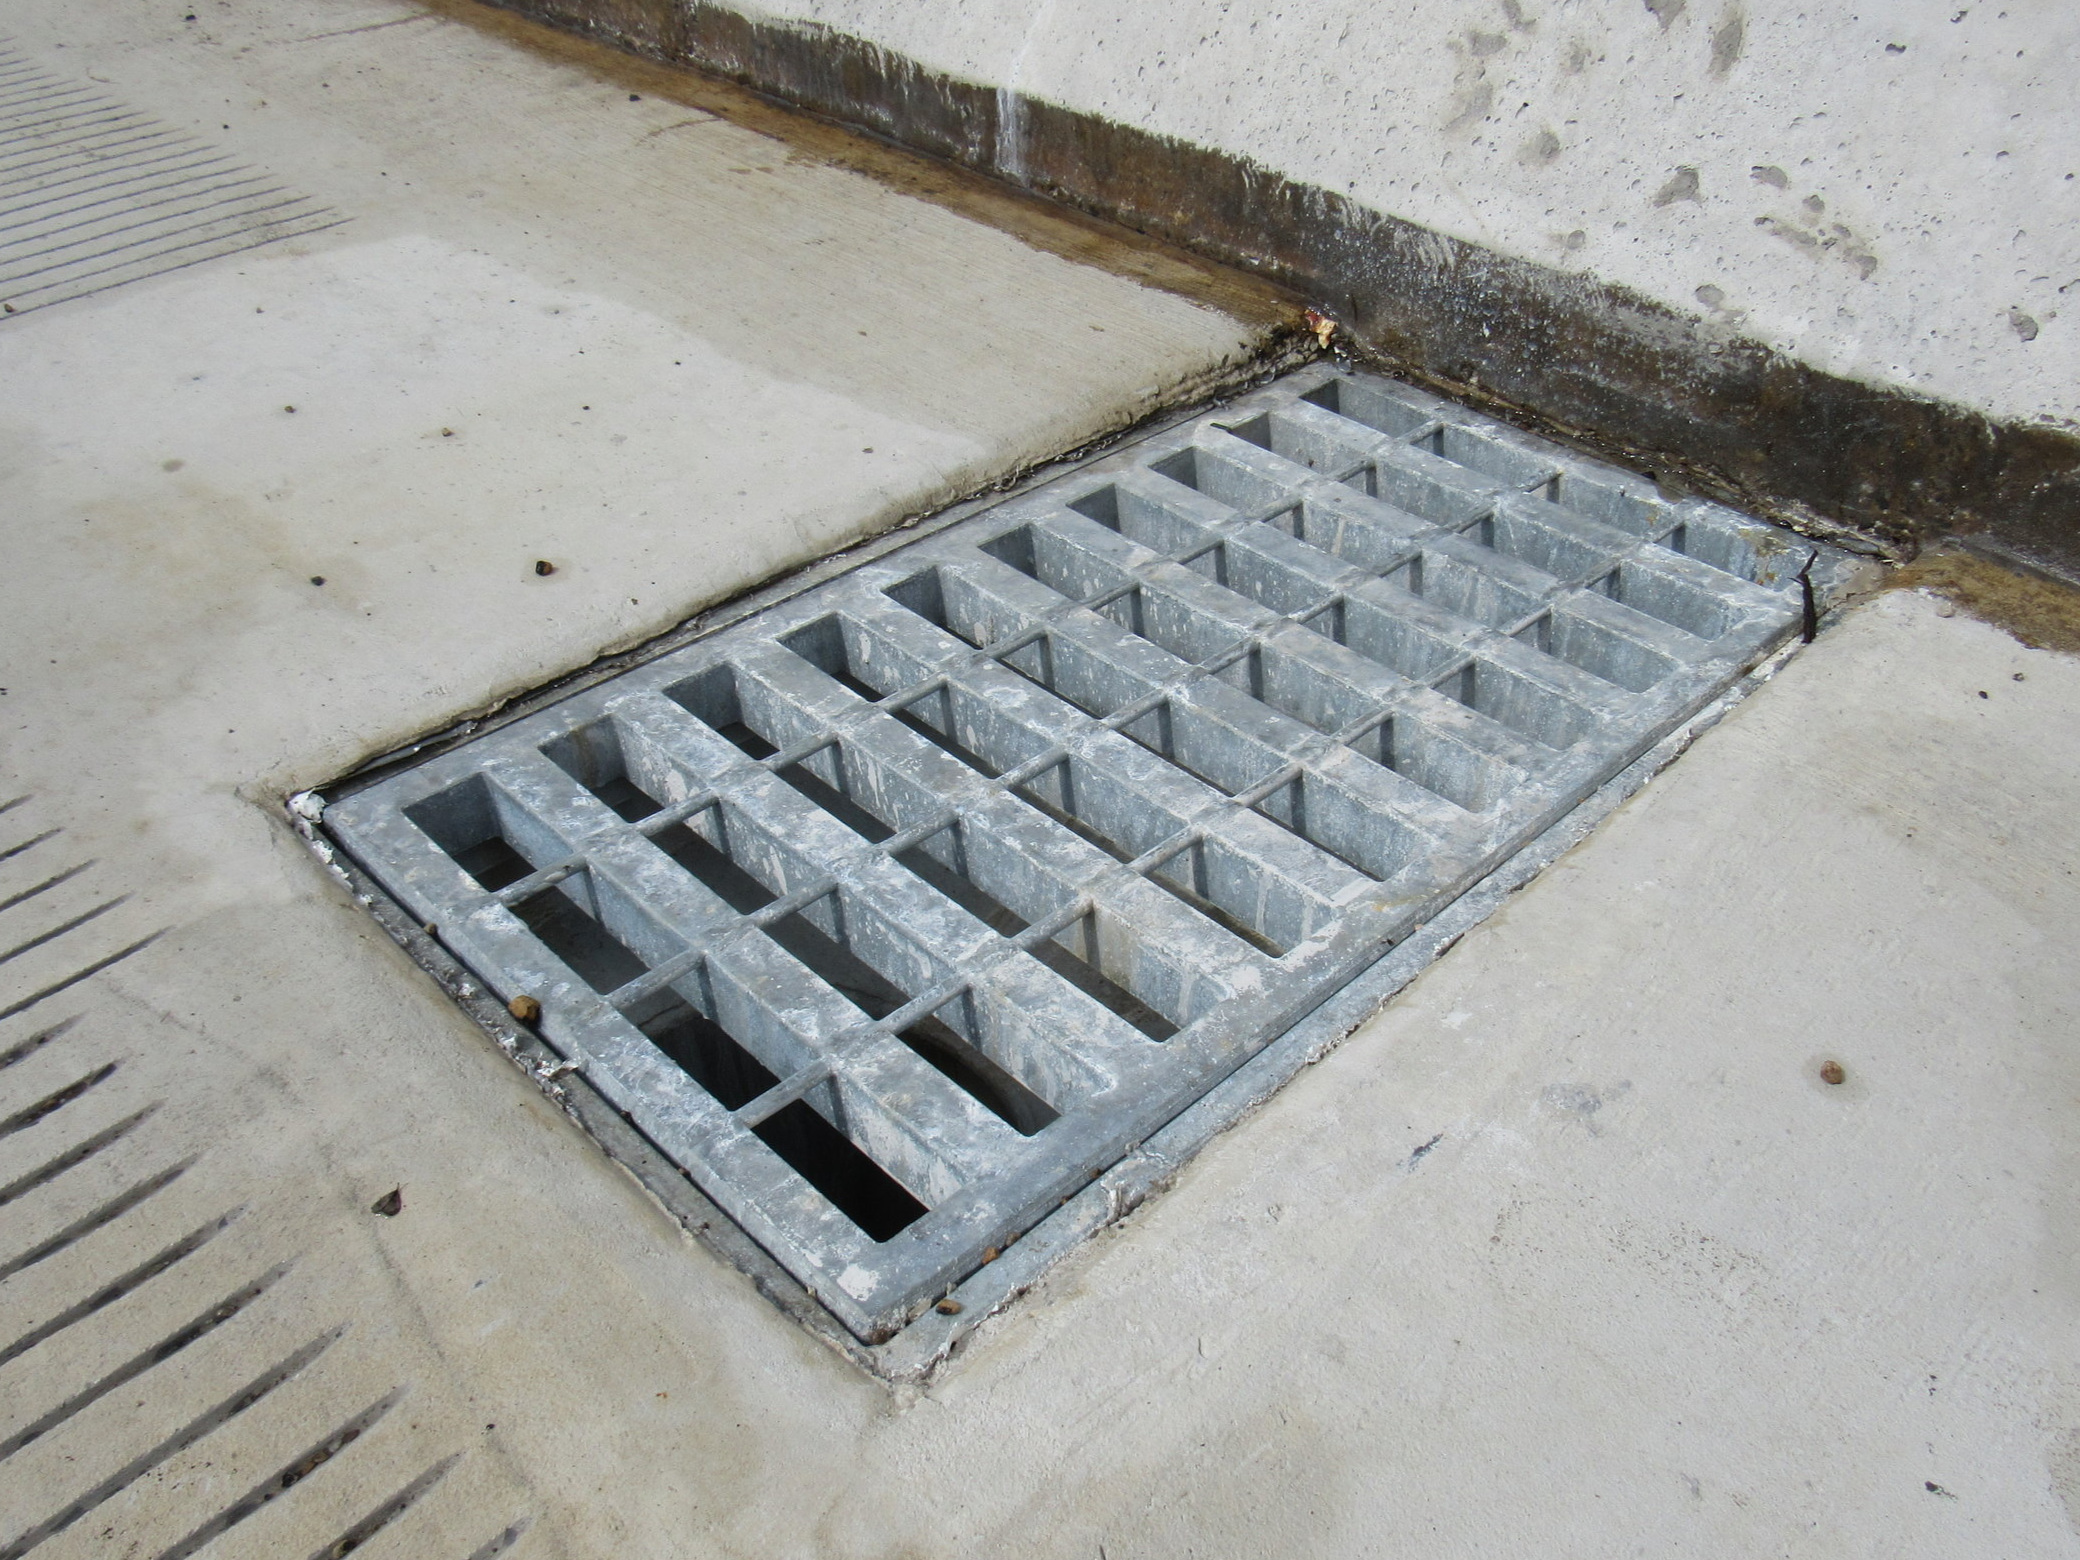 Bridge drainage - Scuppers, Curb Drains, Downspouts, Drain Boxes and more…